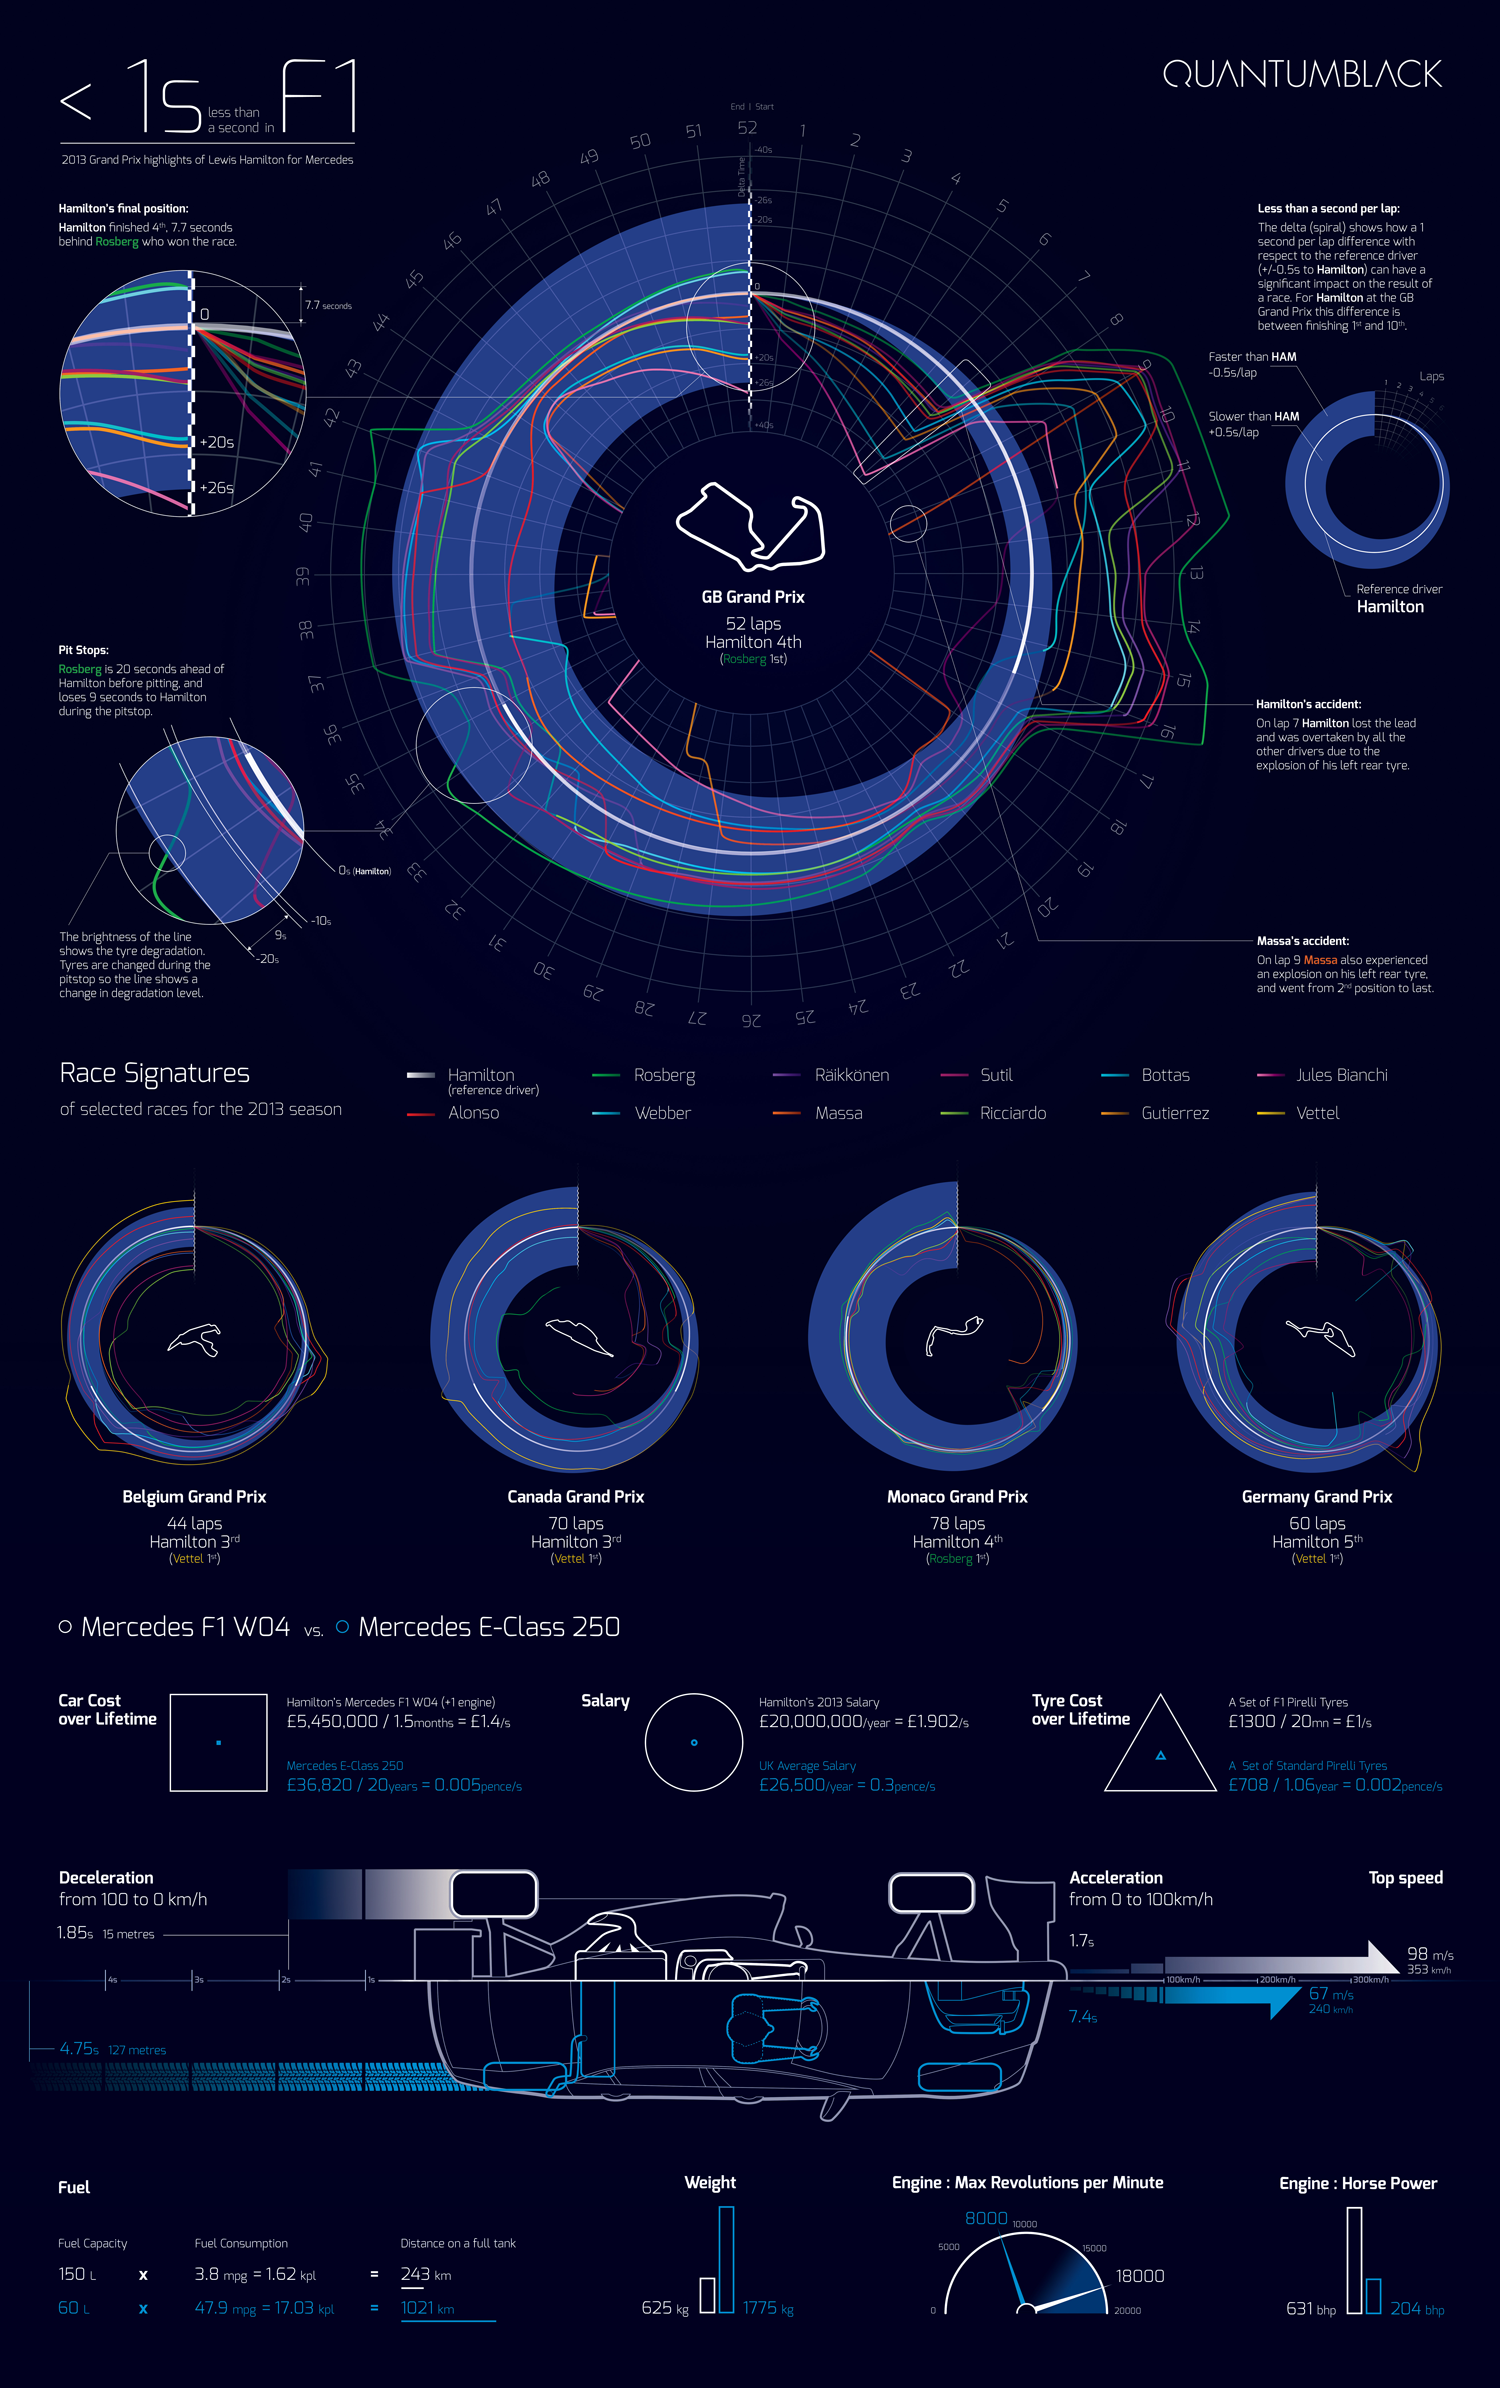 Less than a second in F1 Infographic